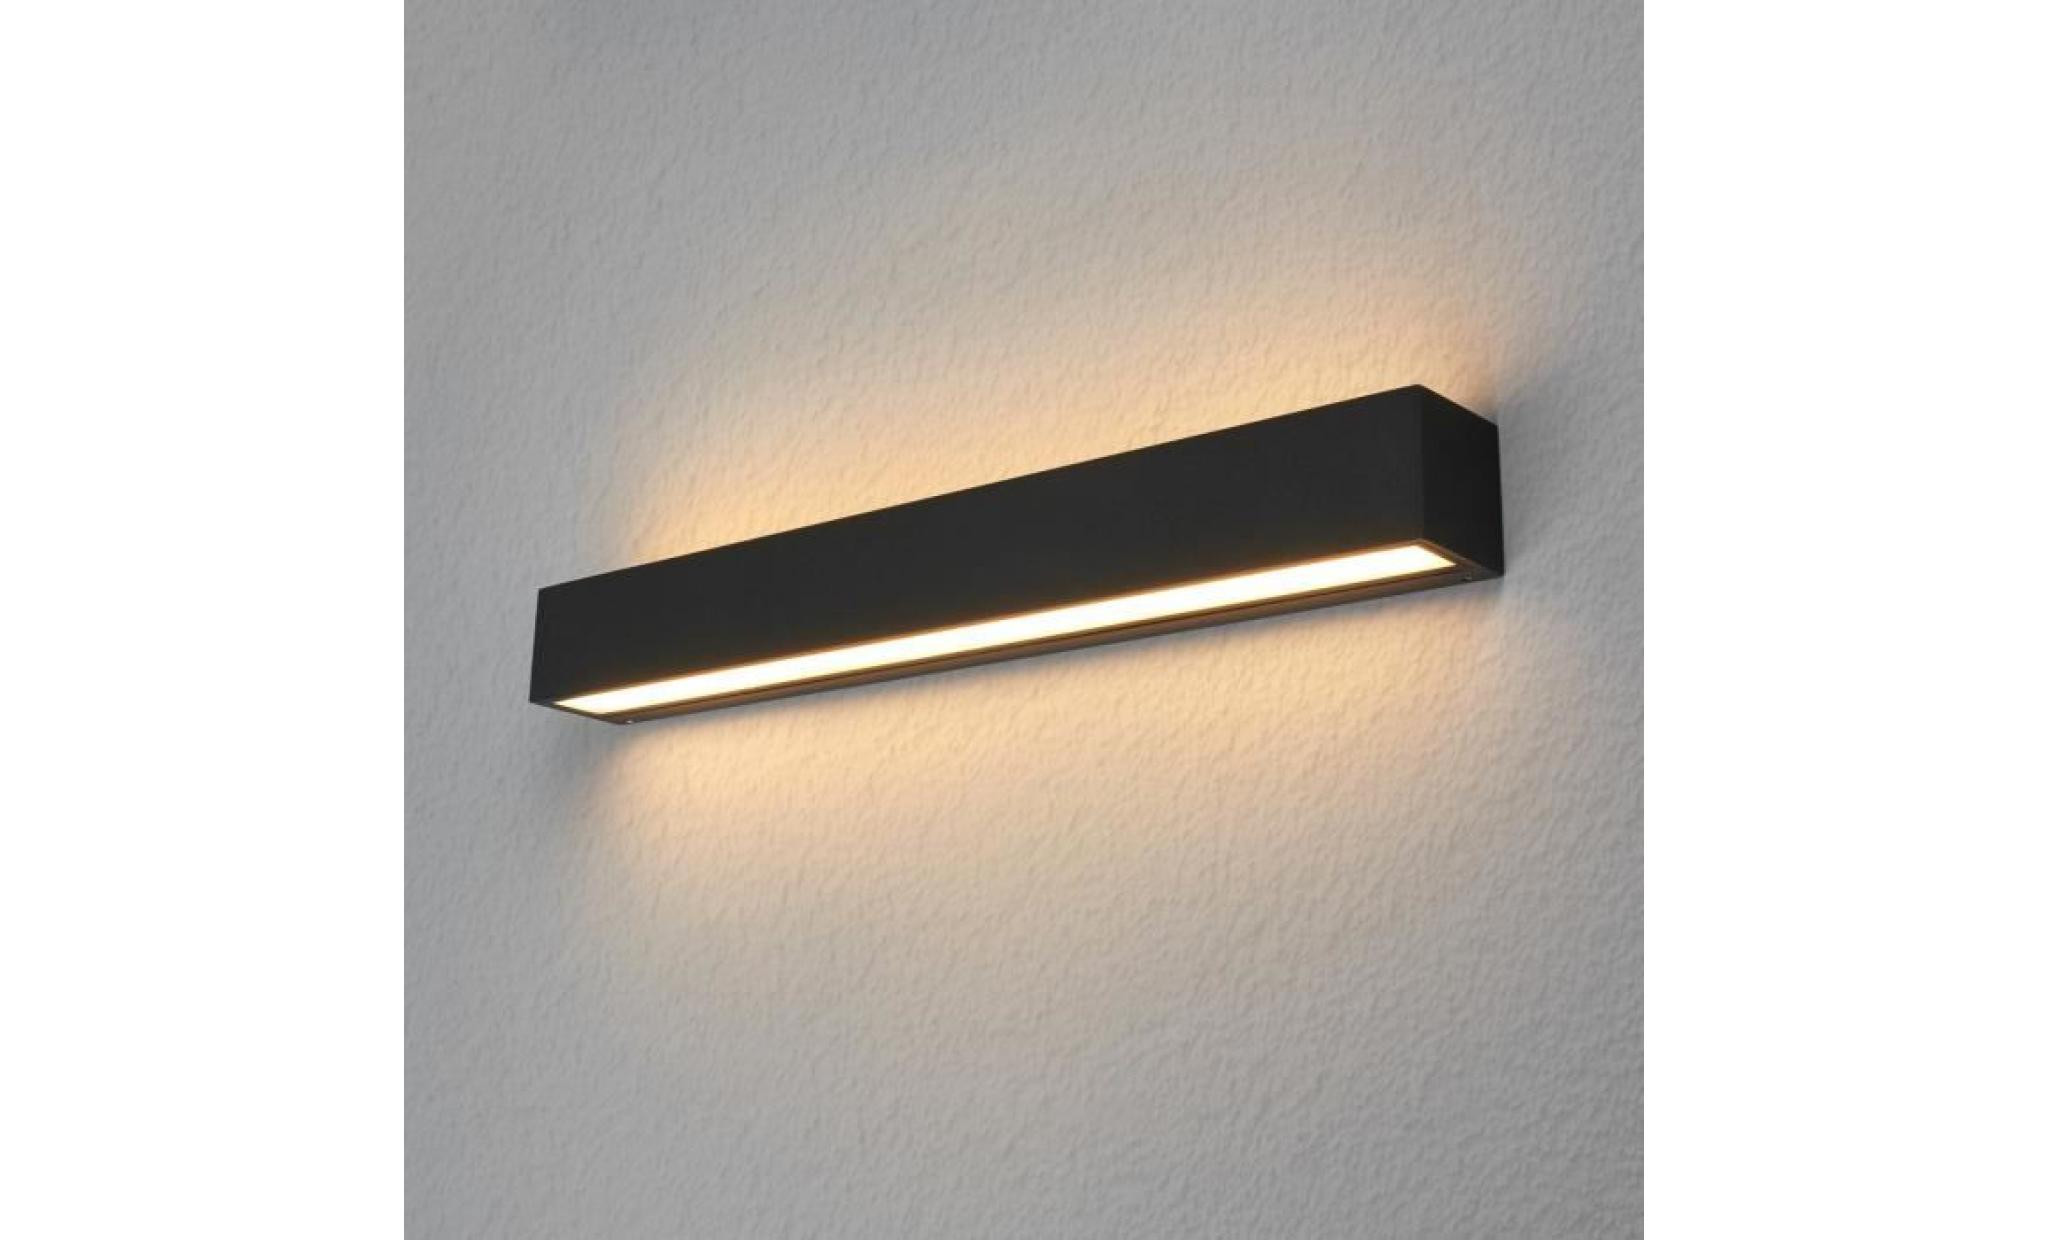 Applique d 39 ext rieur led carr e tuana achat vente for Applique eclairage exterieur led